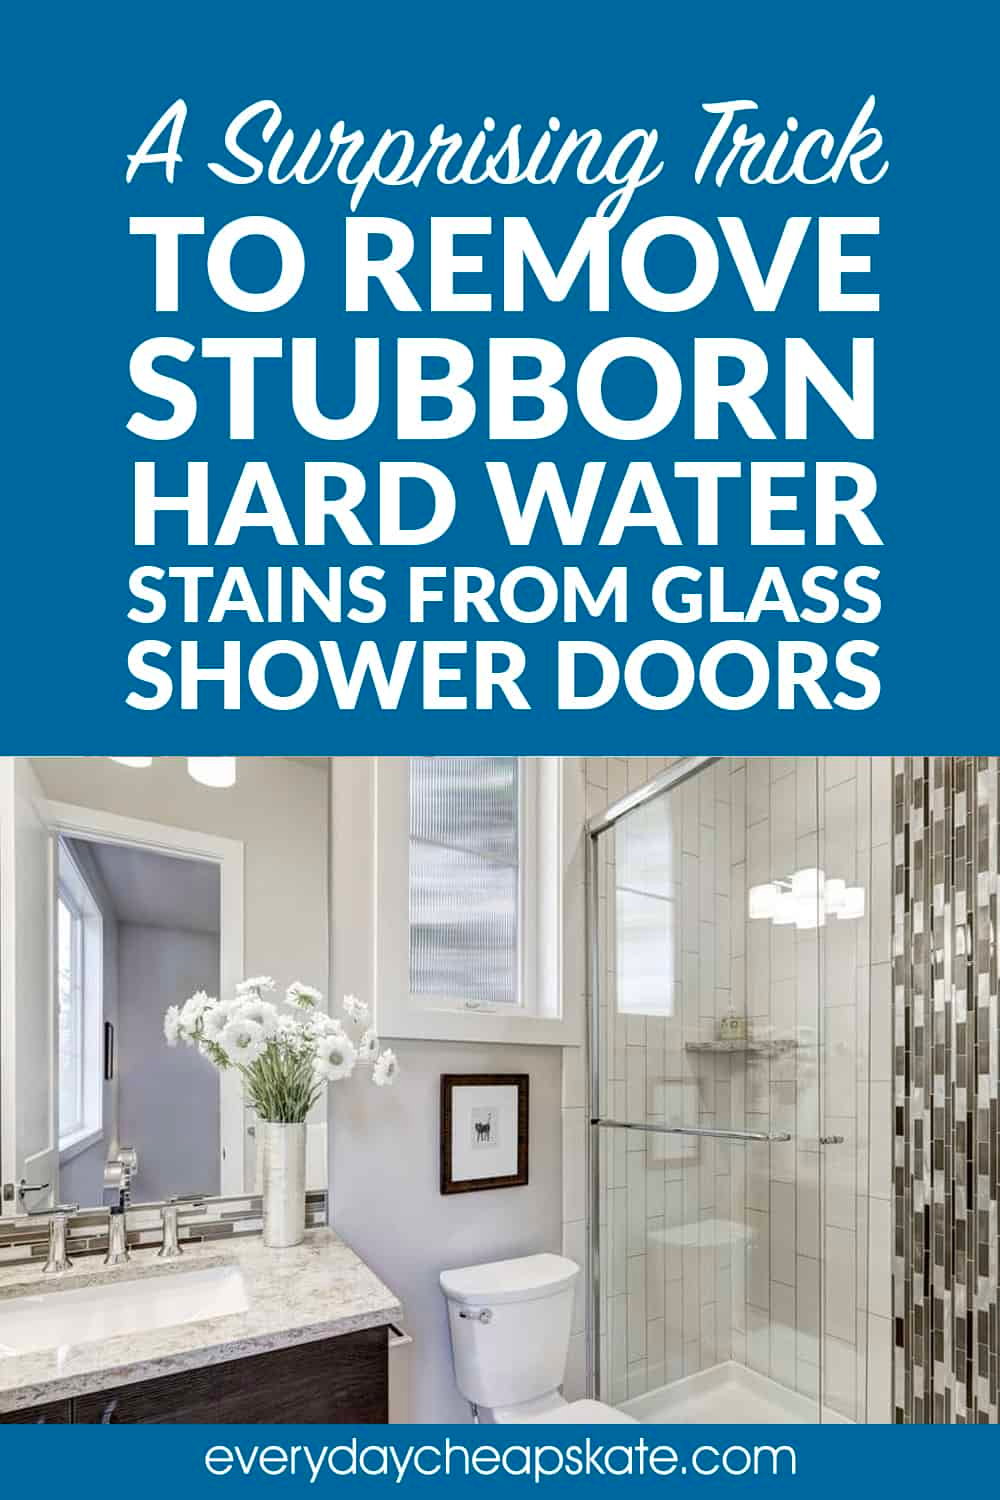 How To Remove Stubborn Hard Water Stains From Glass Shower Doors